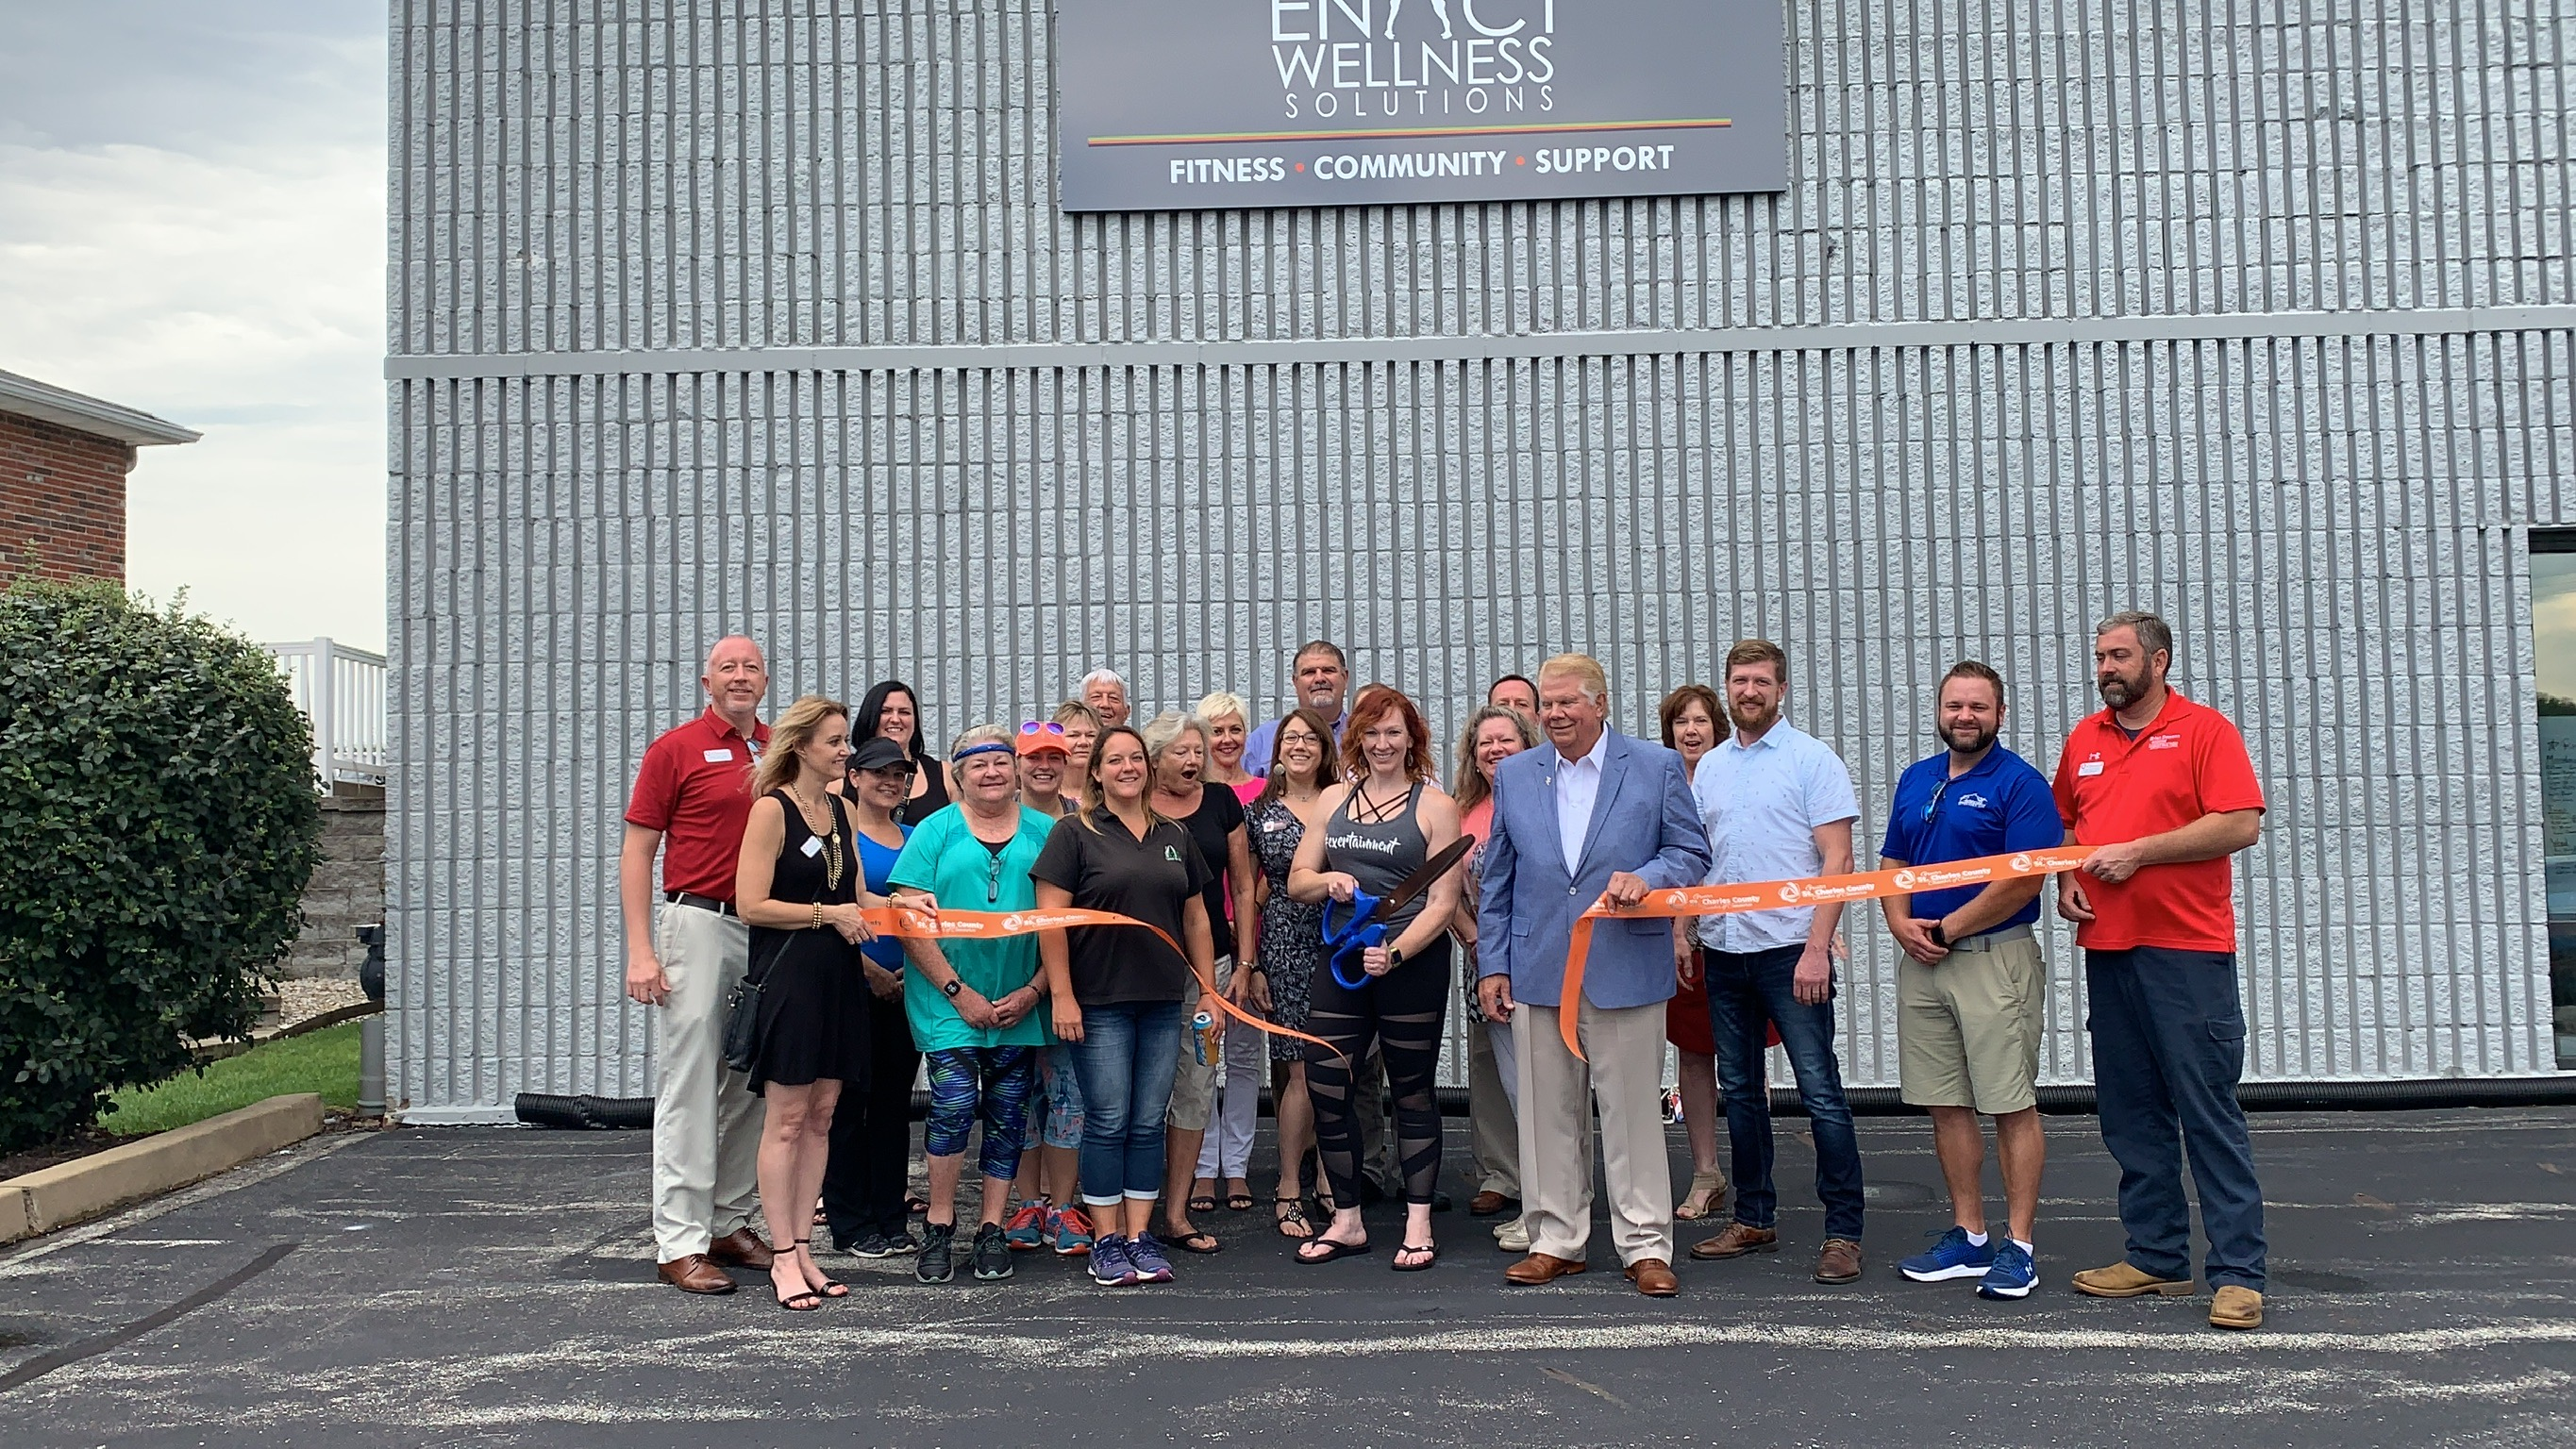 Image for Enact Wellness Solutions Celebrates Grand Opening with Ribbon Cutting Dedication